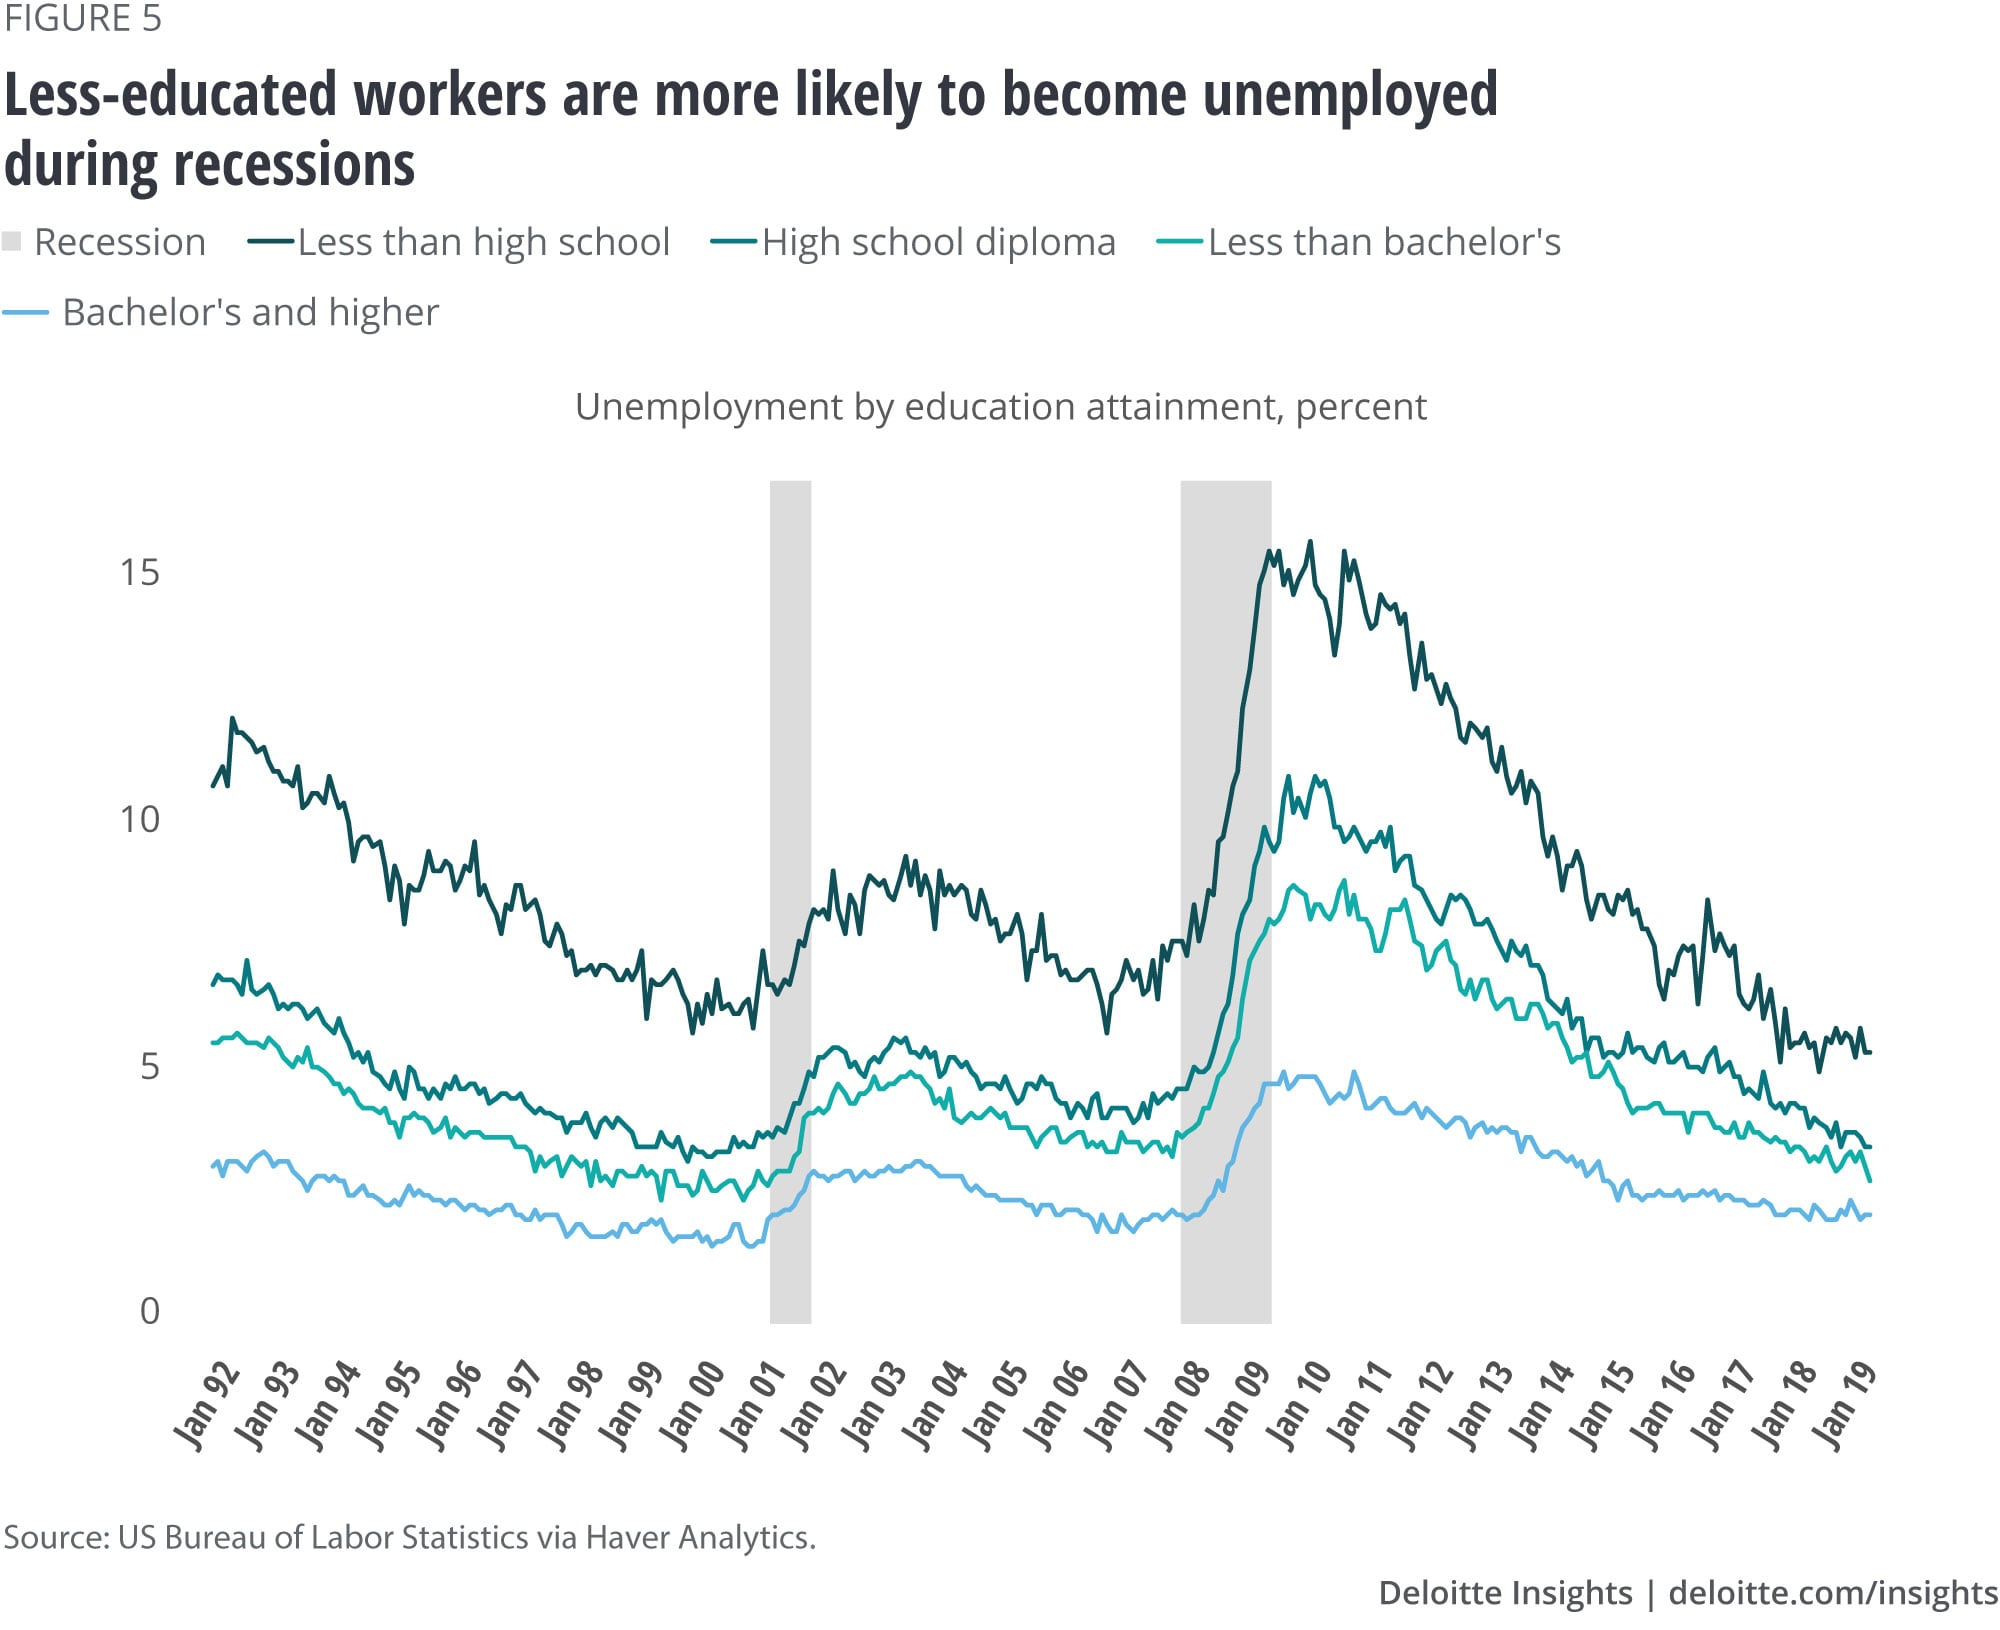 Less-educated workers are more likely to become unemployed during recessions